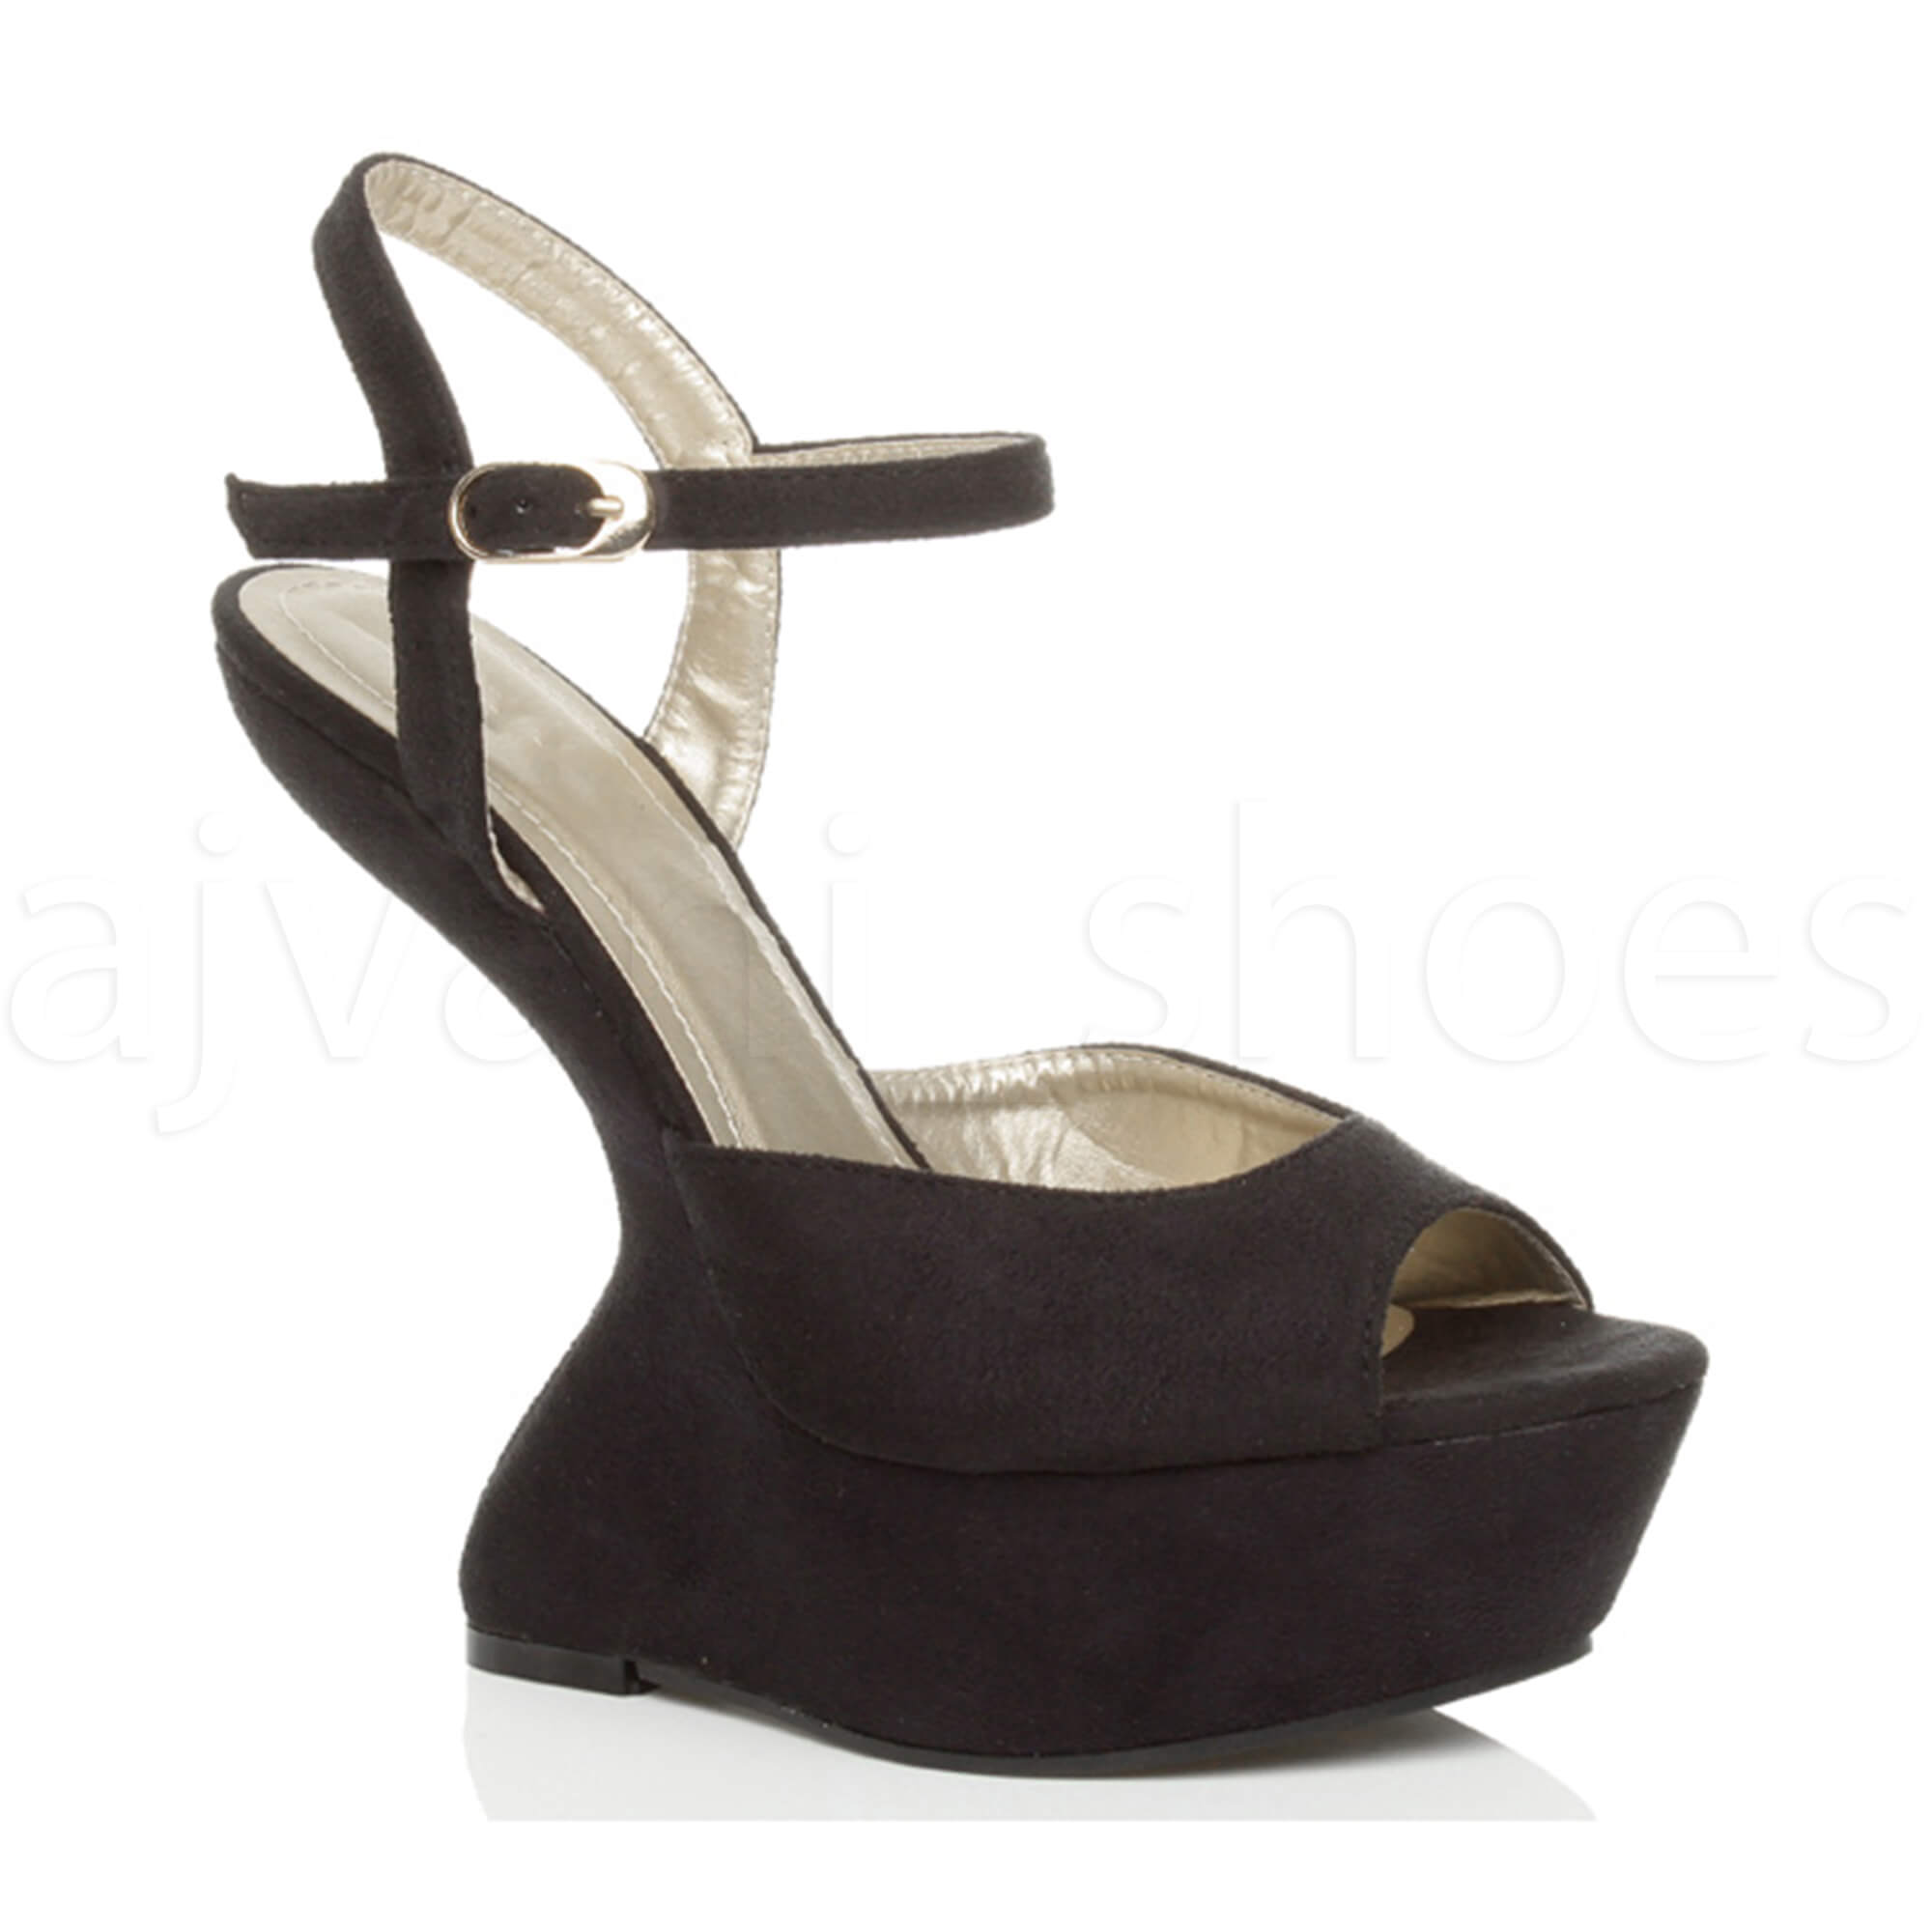 999d8059ed0 ... Ladies High Heel Less Cut out Platform Halloween Costume Party Shoes  Size UK 4   EU 37   US 6 Style H Black. About this product. Picture 1 of 6   Picture ...